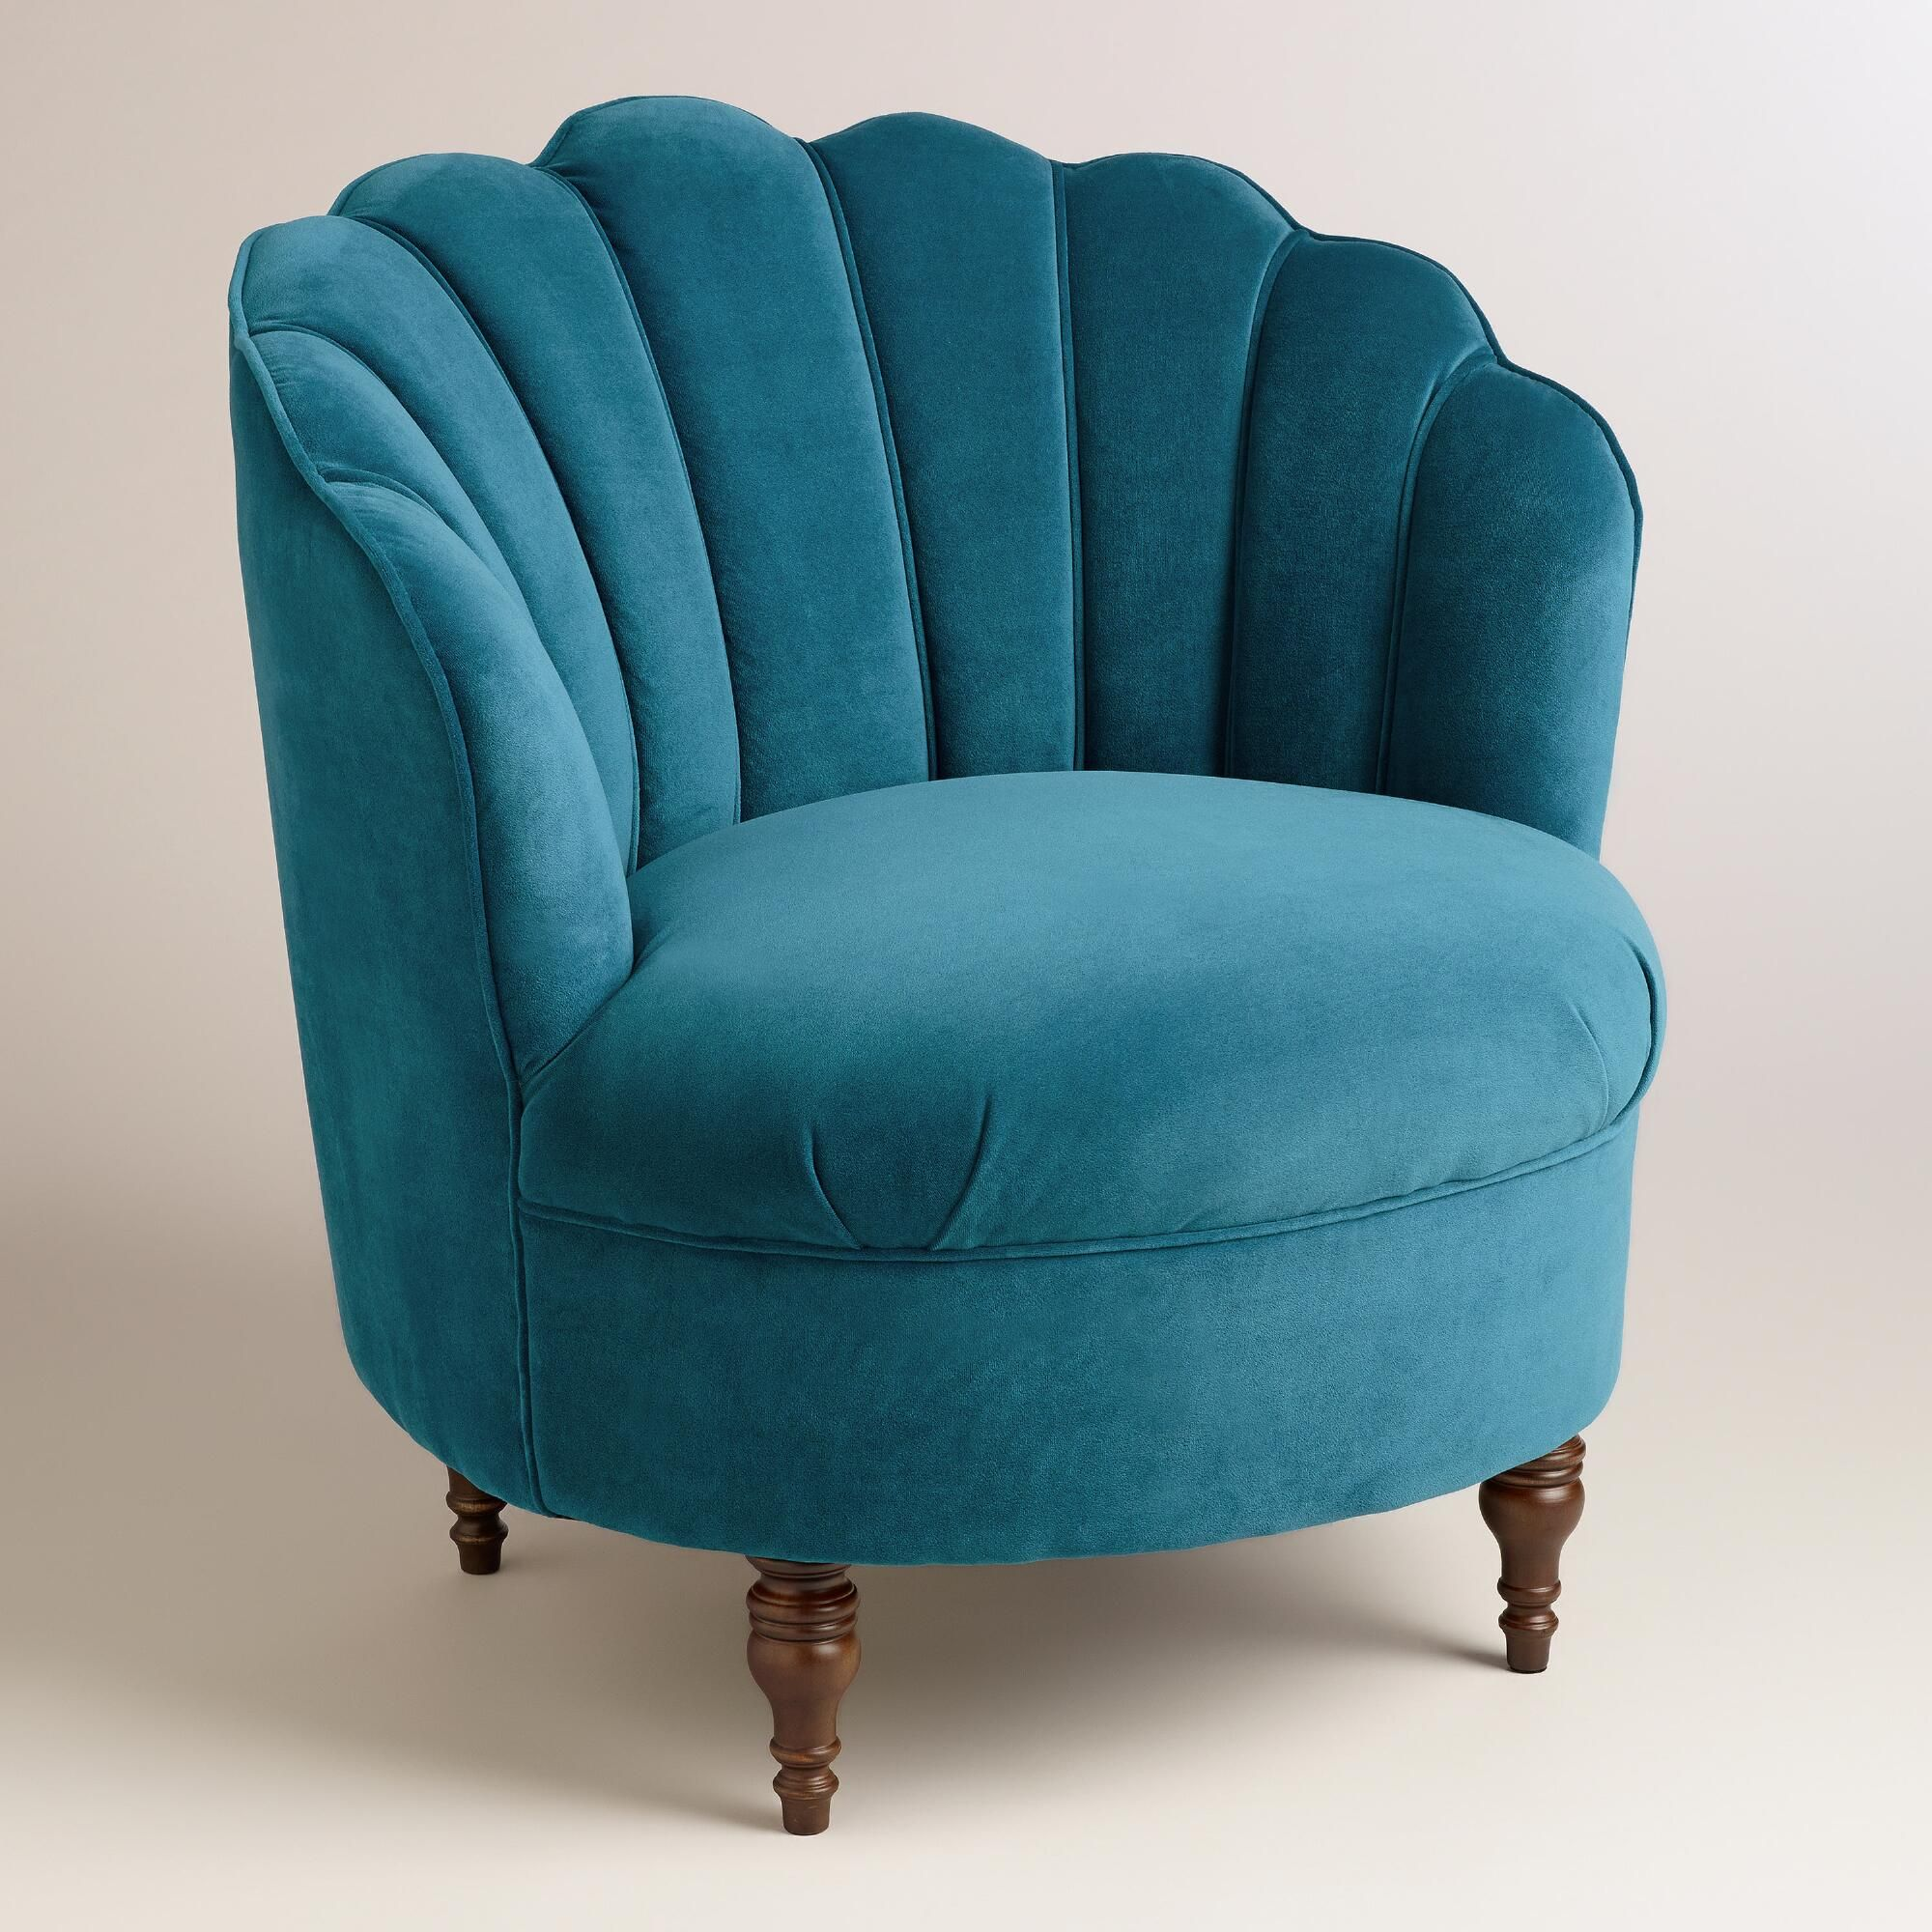 Peacock Blue Accent Chair Peacock Blue Velvet Telulah Chair World Market For The